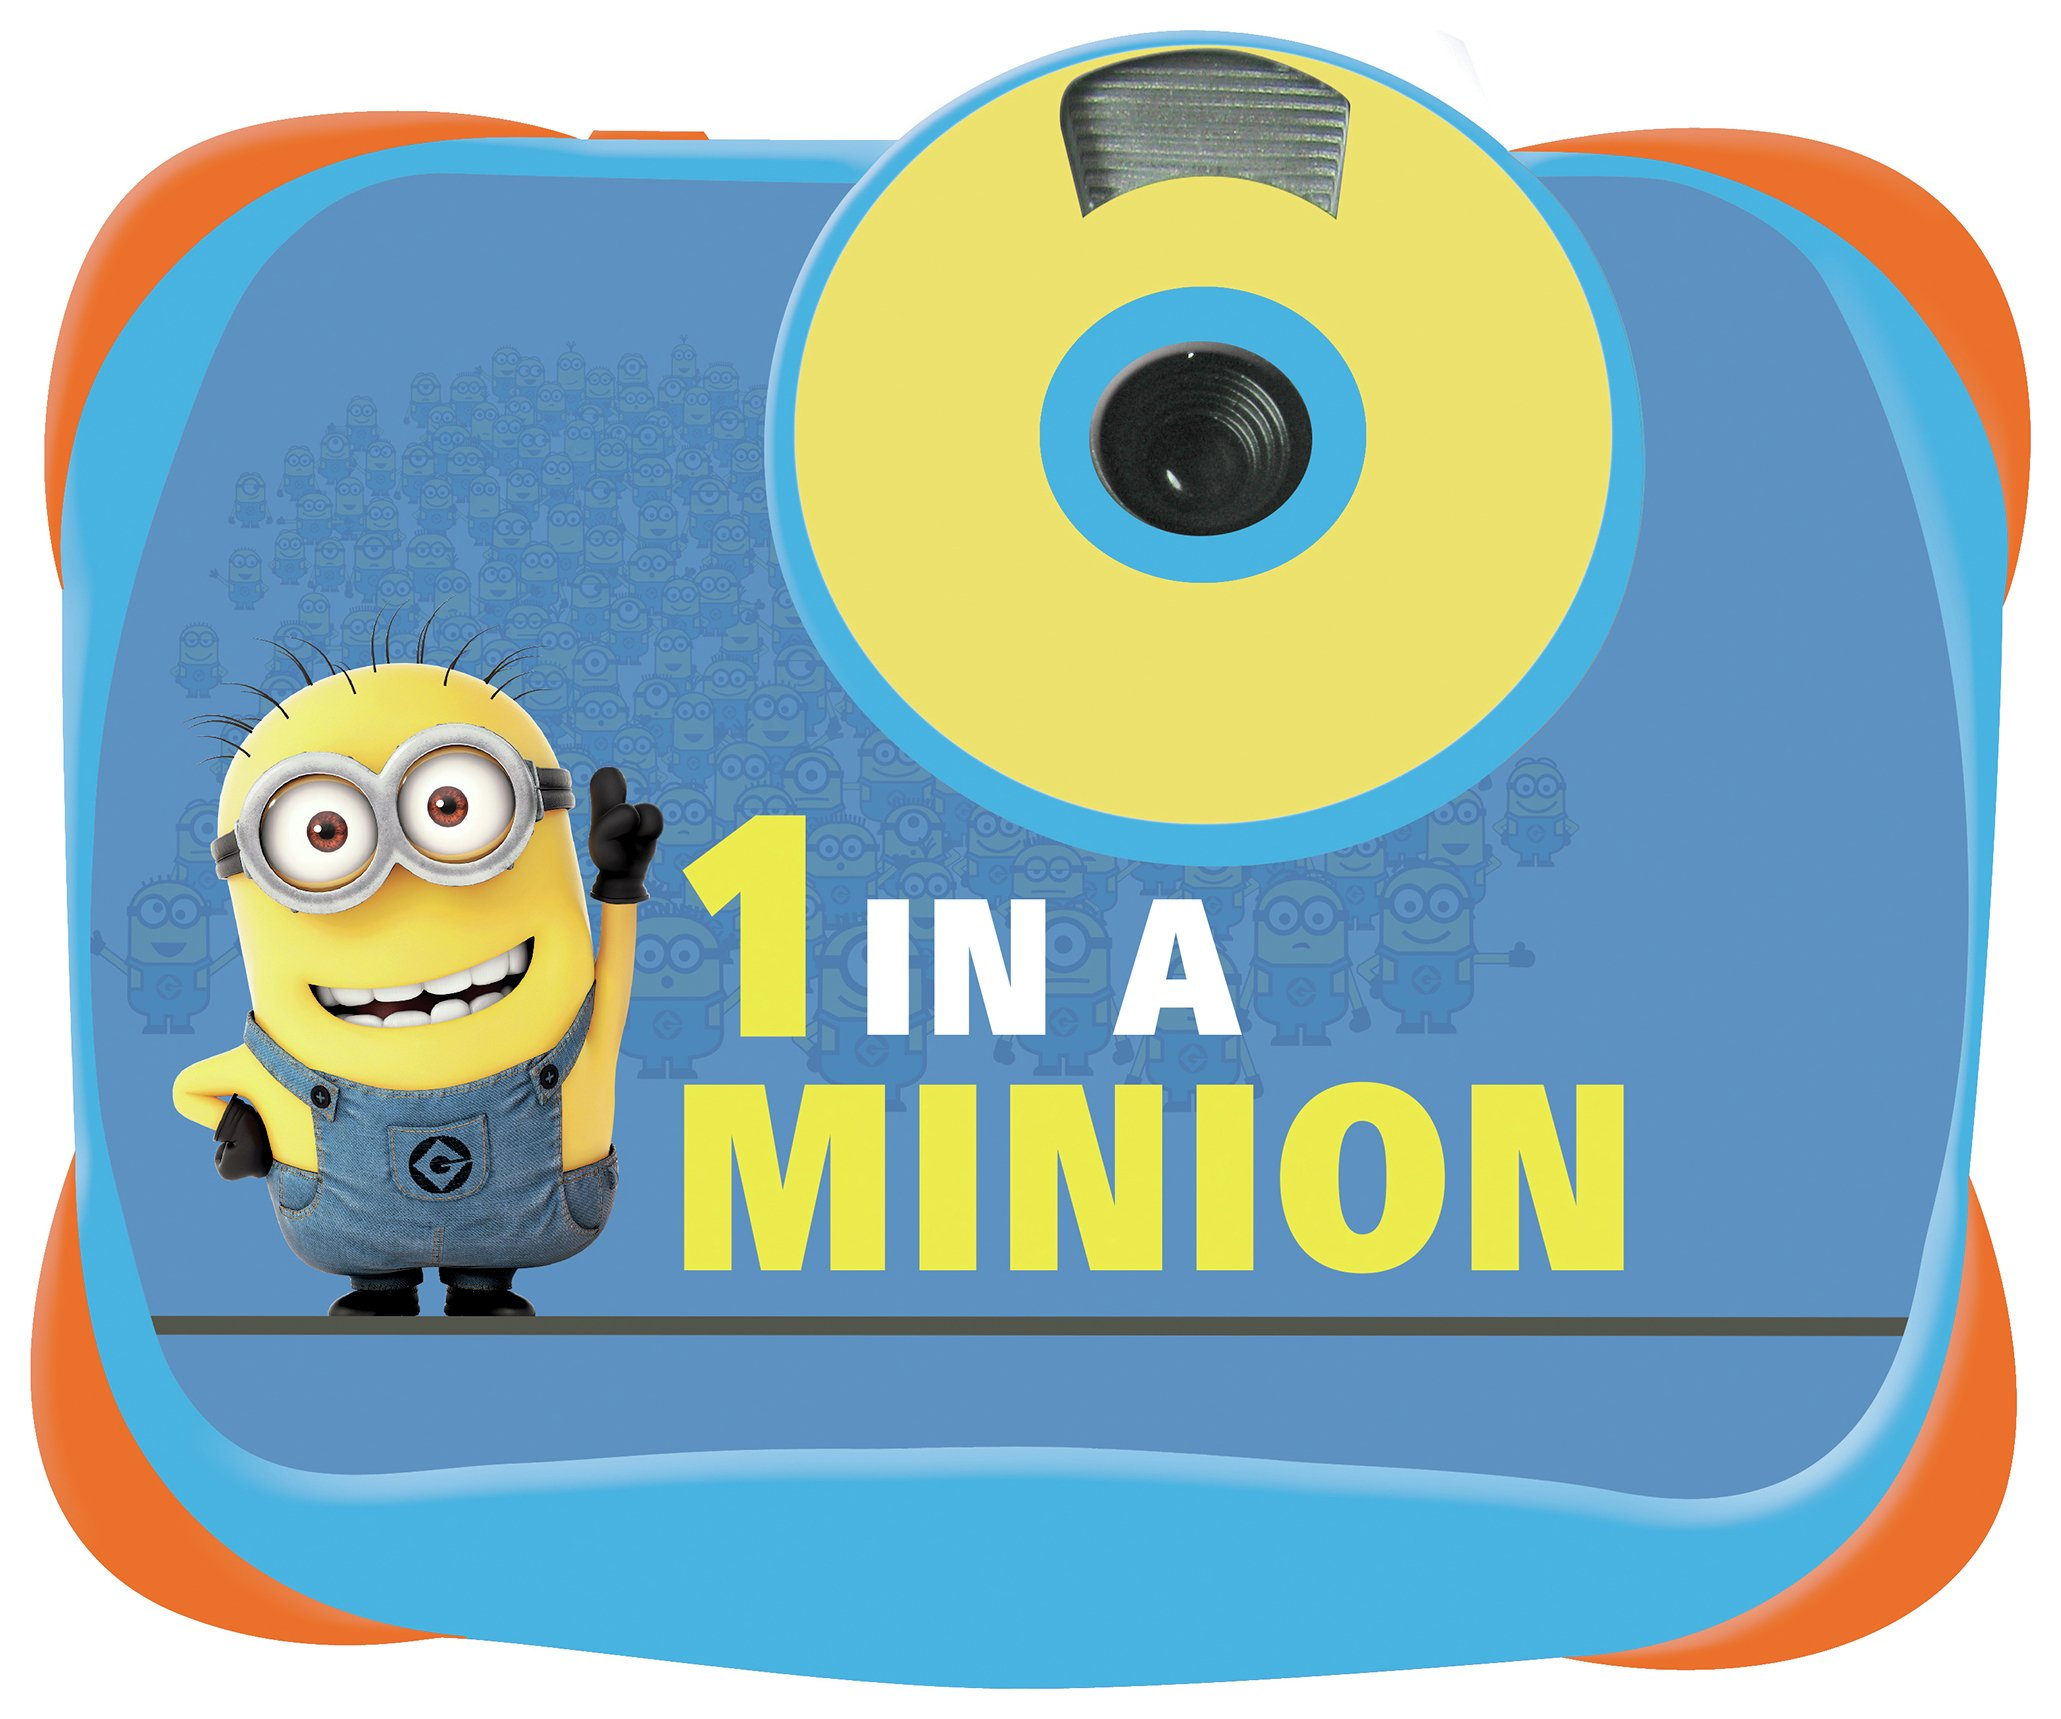 Image of Despicable Me 5 MP Digital Camera with Flash.